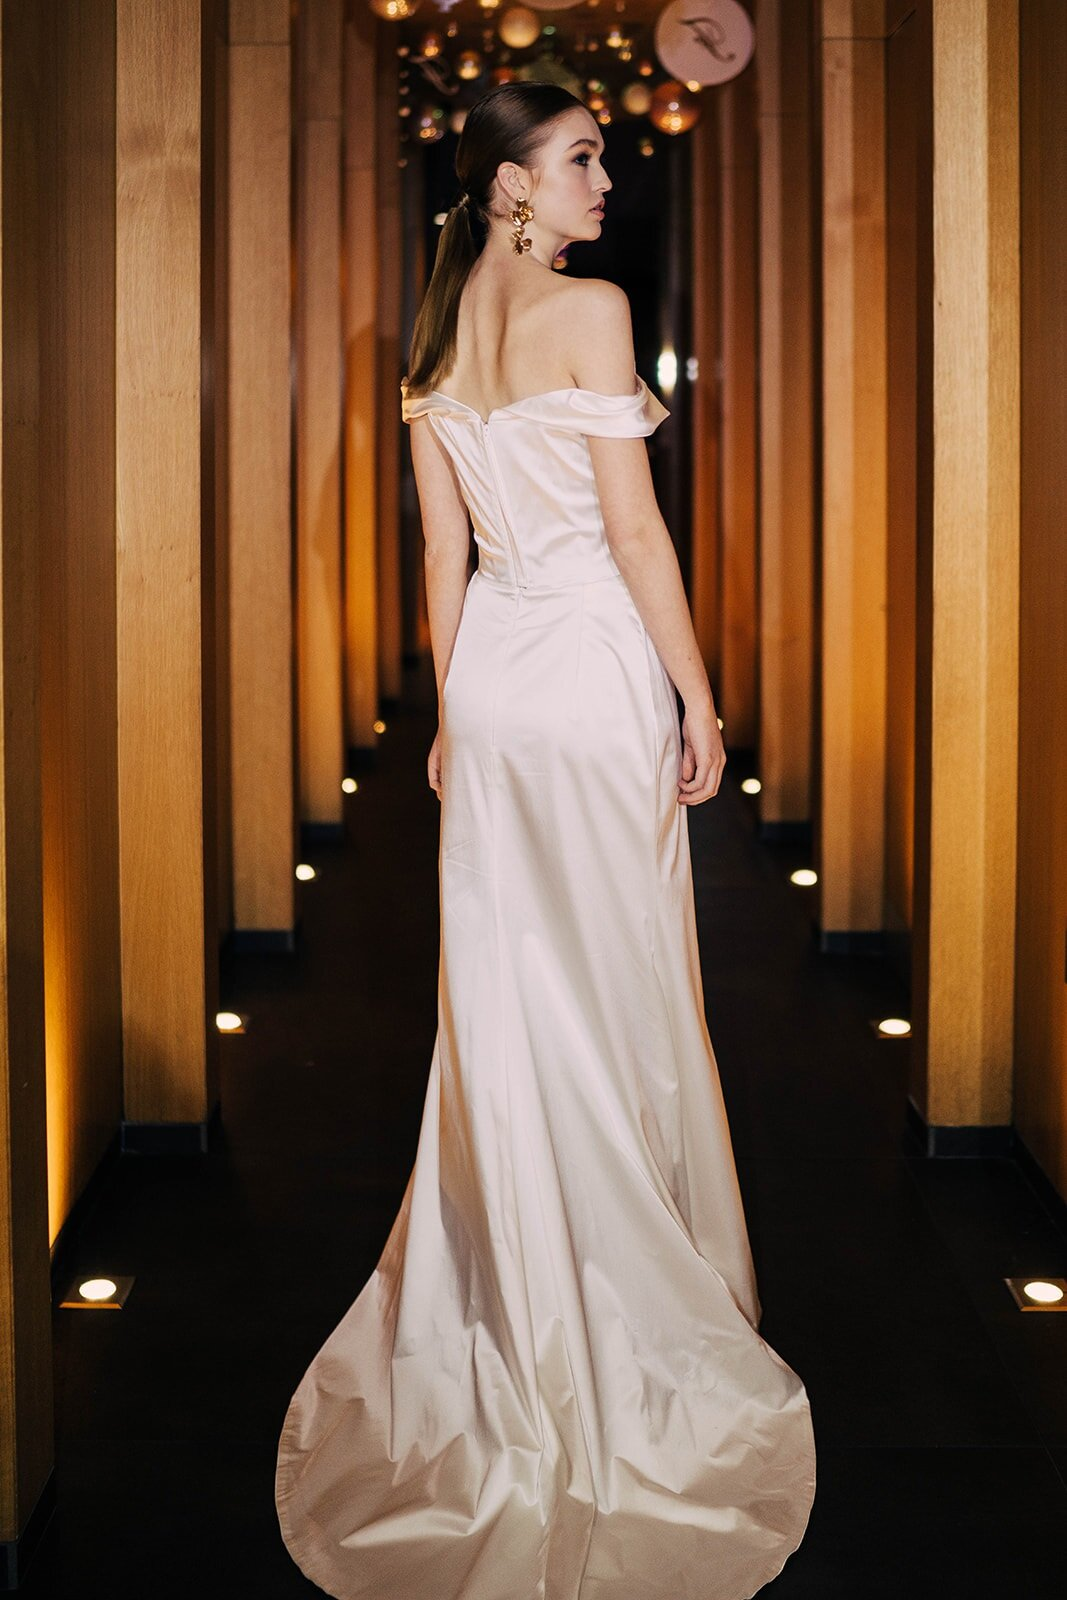 Vivienne Westwood The White Gallery Wedding Dresses Ireland Northern Ireland,Dresses For Attending A Summer Wedding